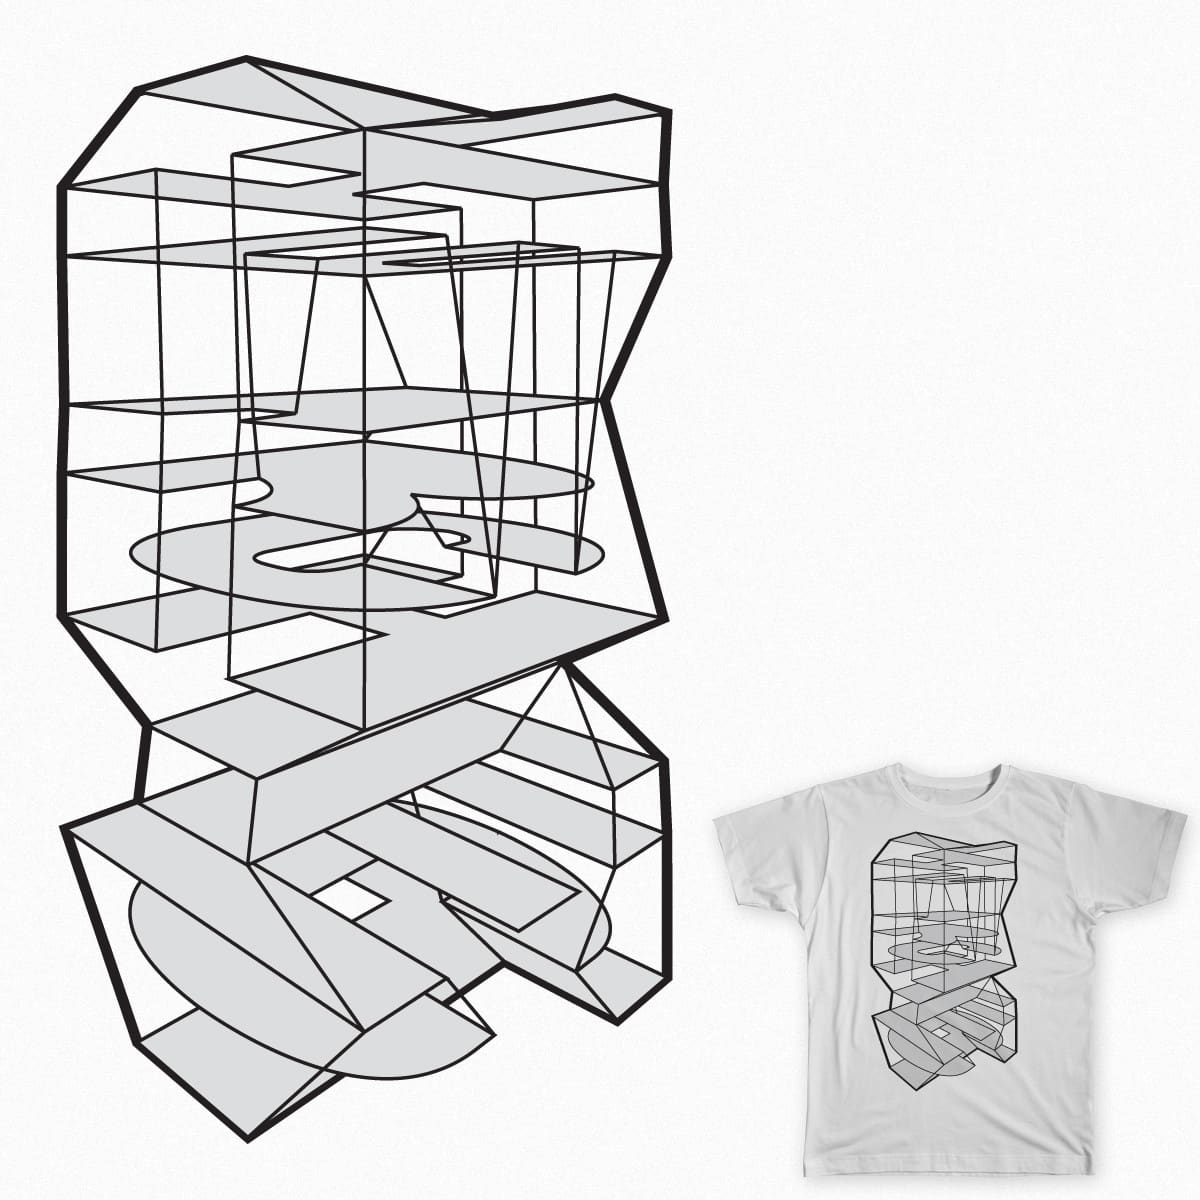 The Architect by Lee Hatann on Threadless